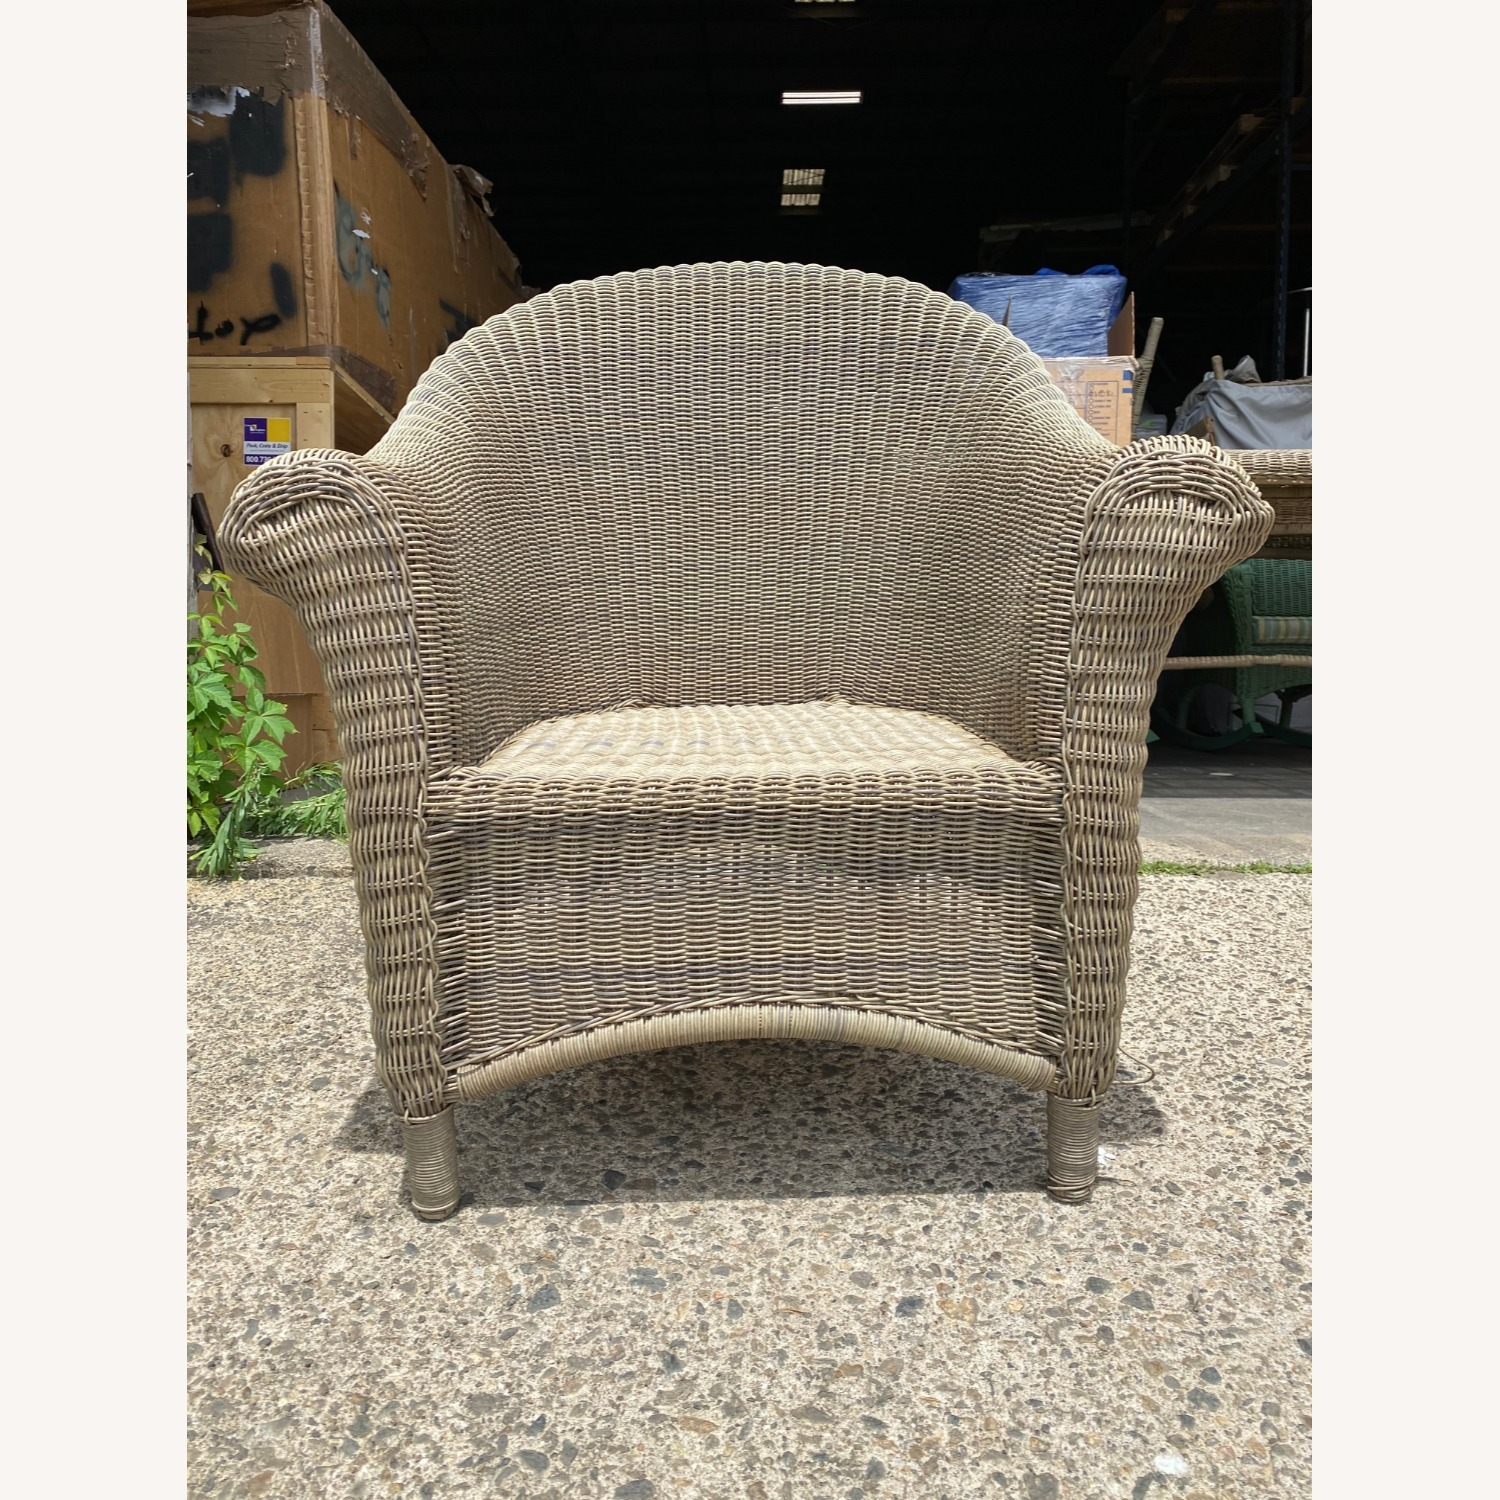 Two Restoration Hardware Outdoor Lounge Chairs - image-3